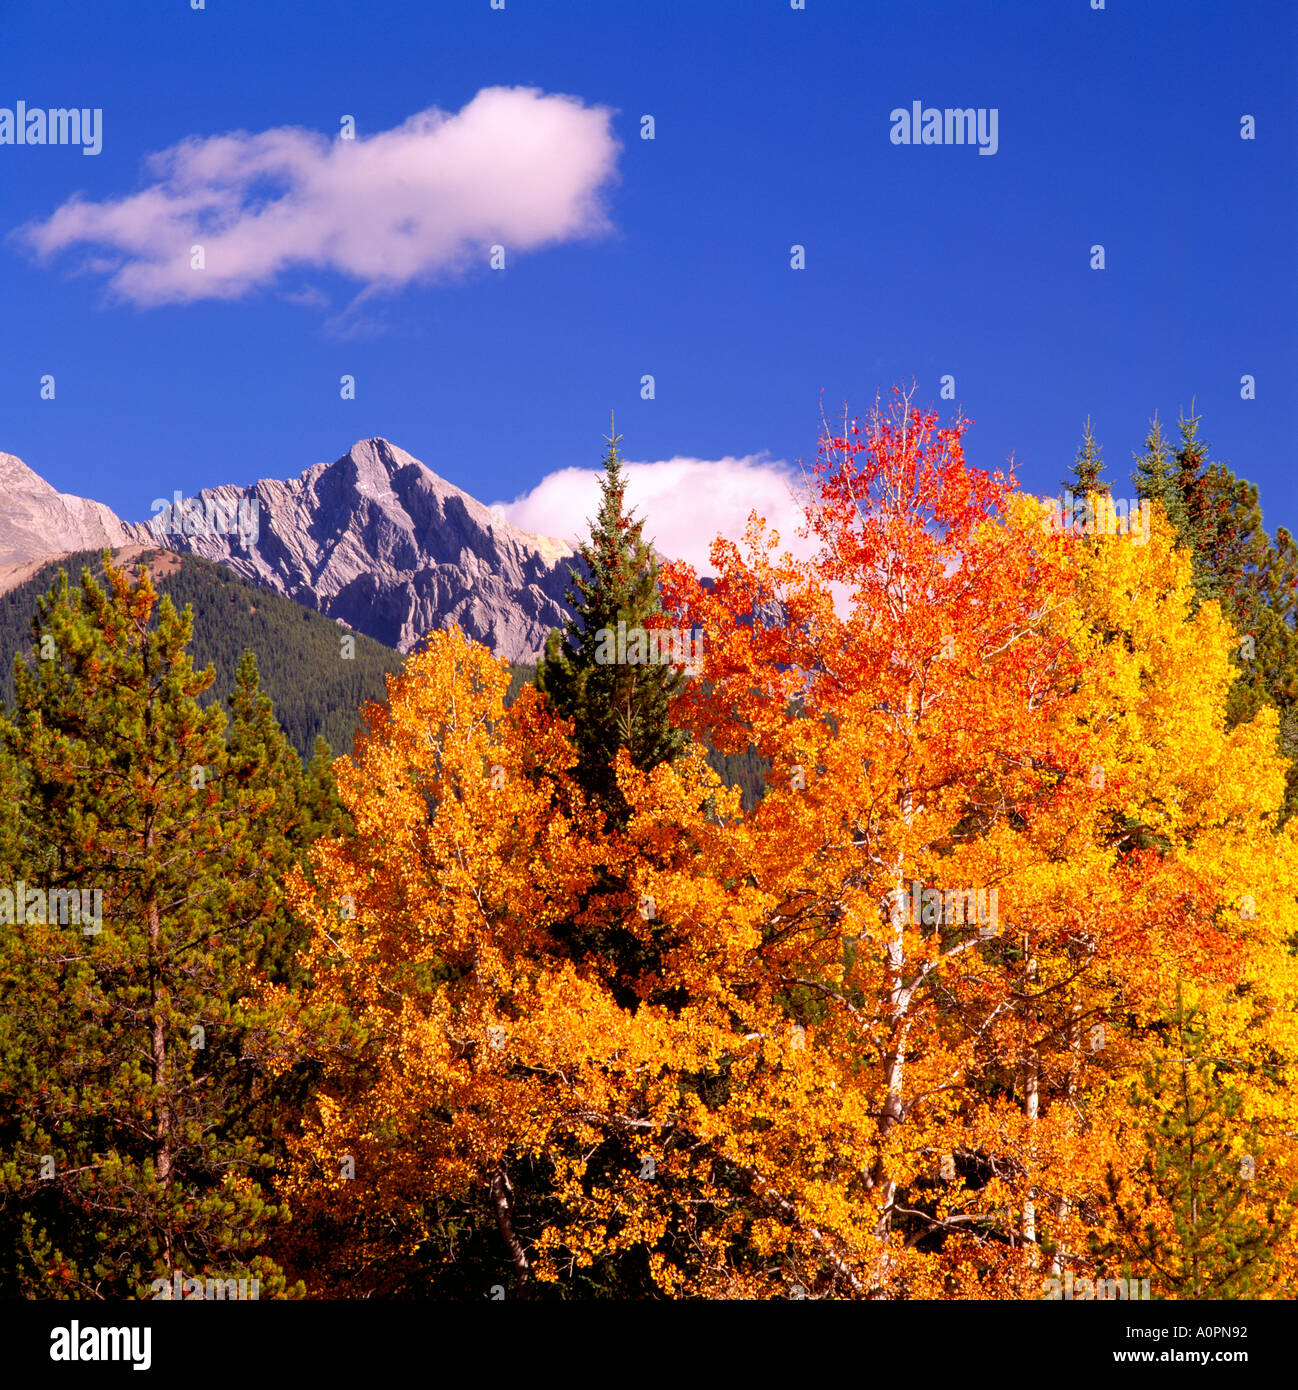 Leaves on trees in autumn colors and mountain peak in kootenay leaves on trees in autumn colors and mountain peak in kootenay national park in the canadian rockies british columbia canada sciox Image collections